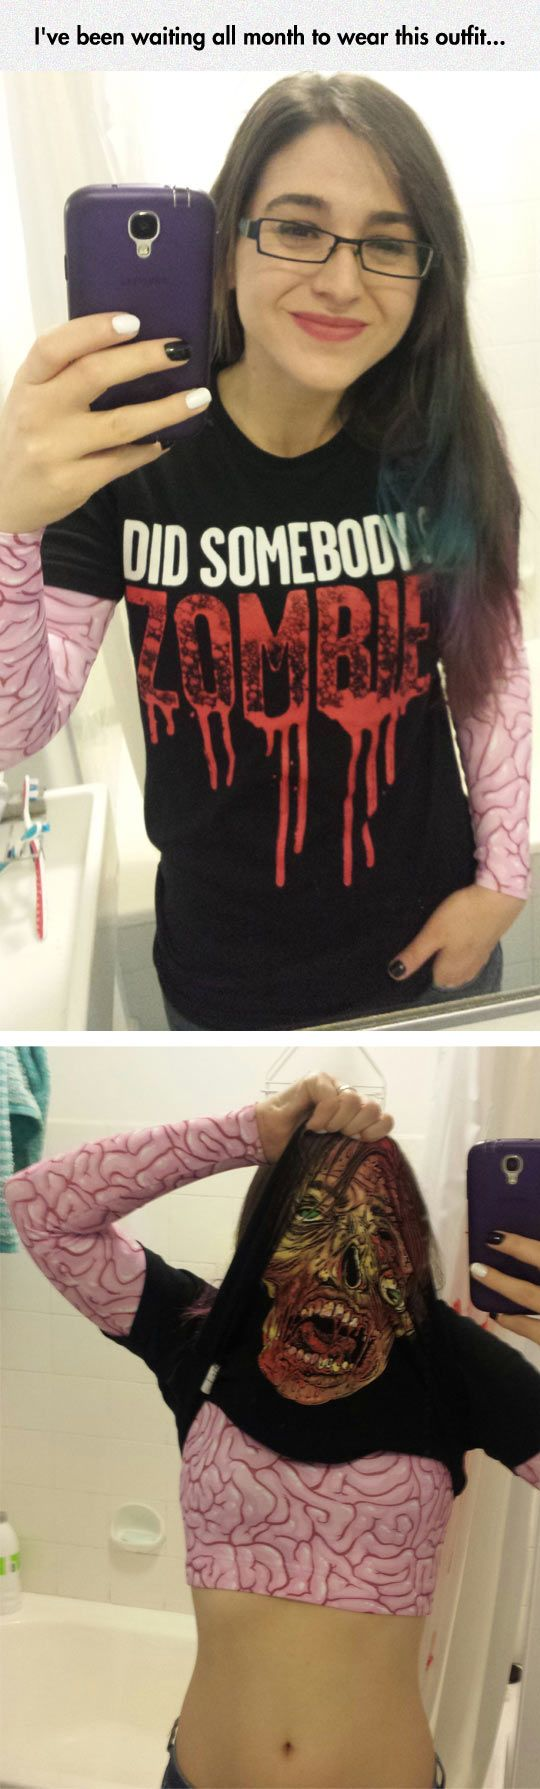 Instant Zombie T-Shirt Costume